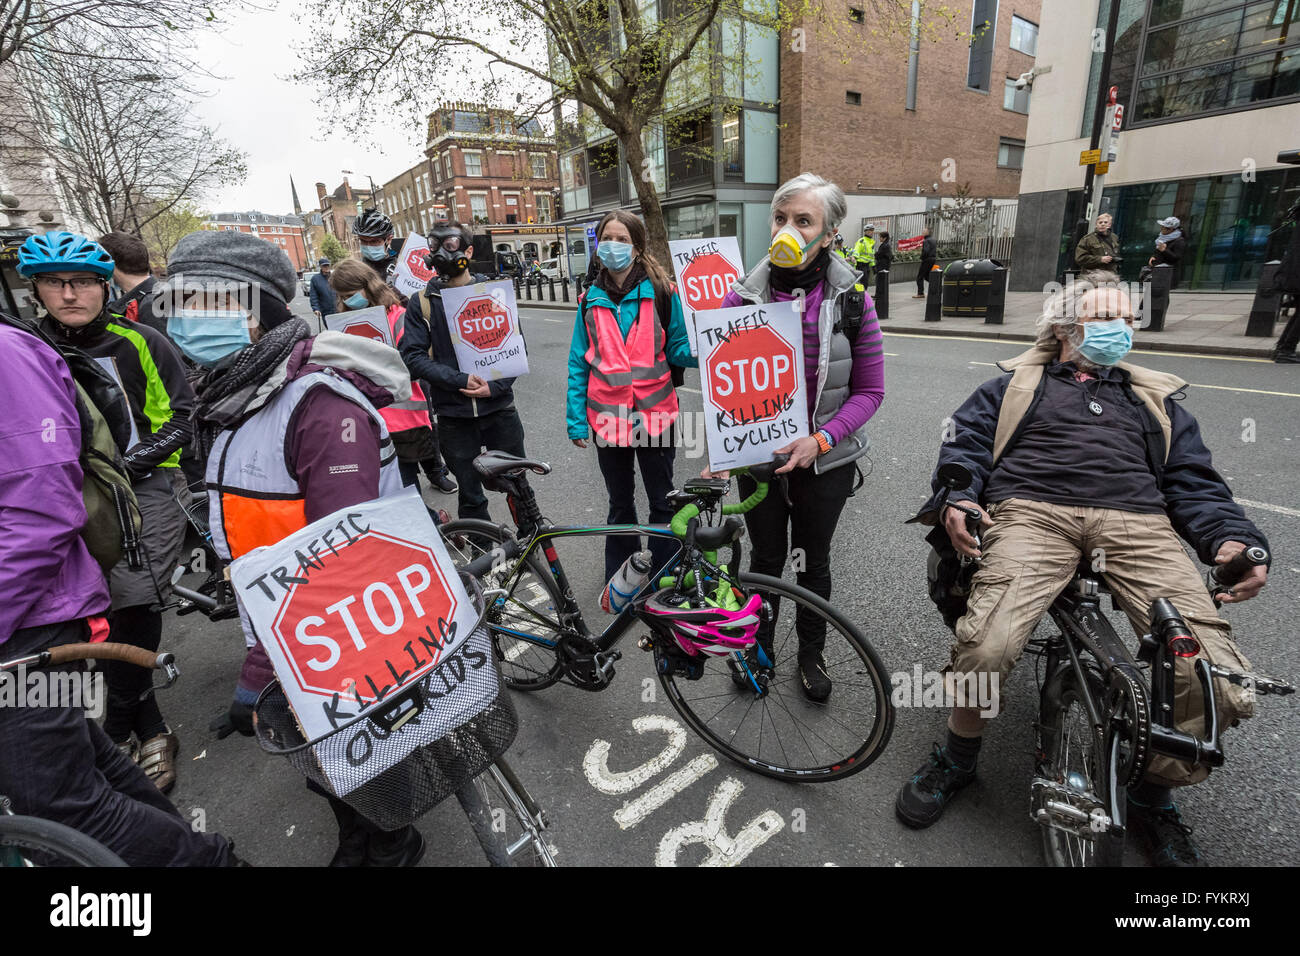 London, UK. 27th April, 2016. Transport Pollution Die-In protest outside Department for Transport Credit:  Guy Corbishley/Alamy - Stock Image